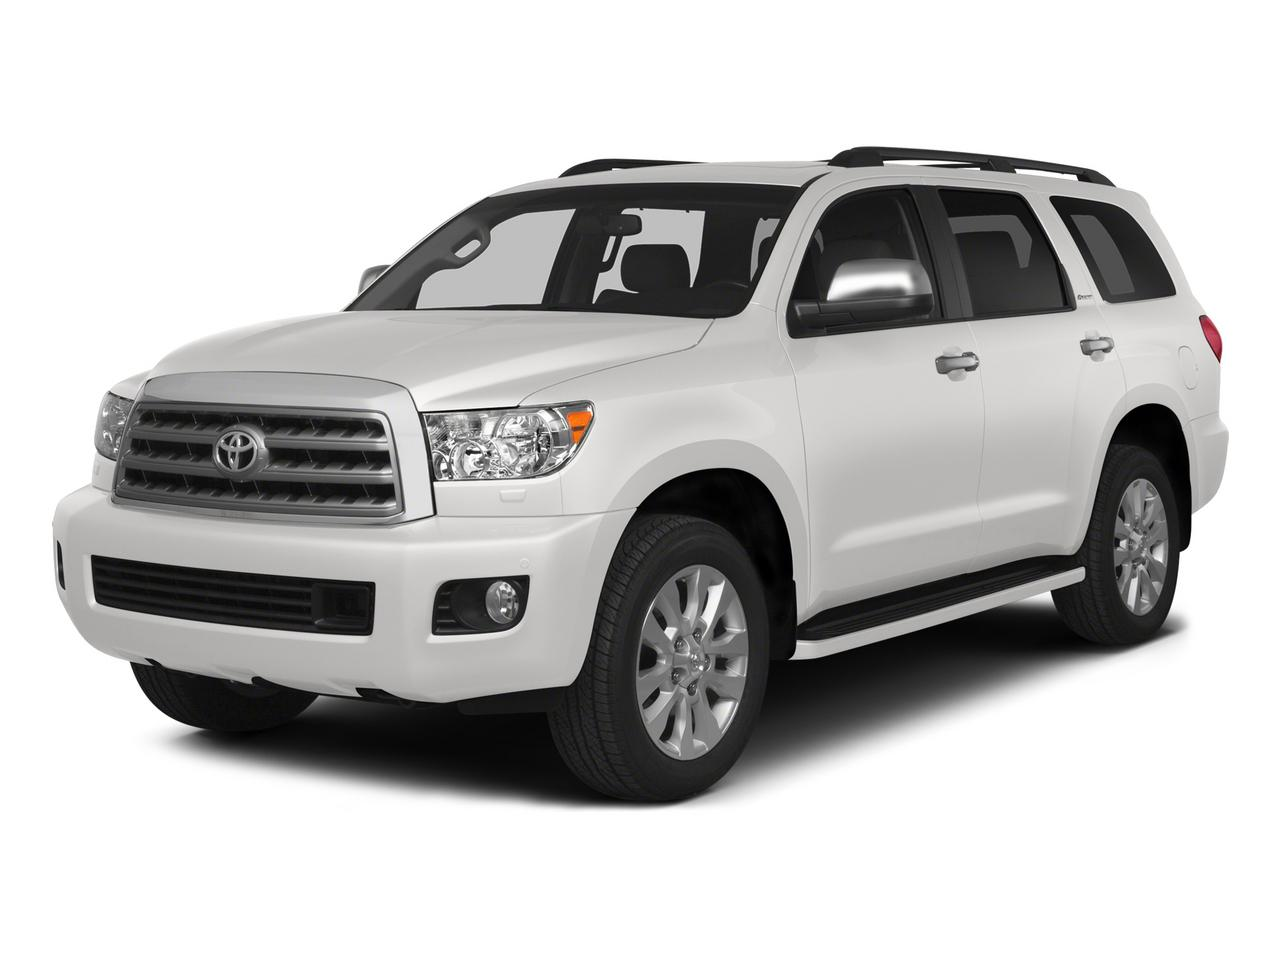 2015 Toyota Sequoia Vehicle Photo in DULUTH, GA 30096